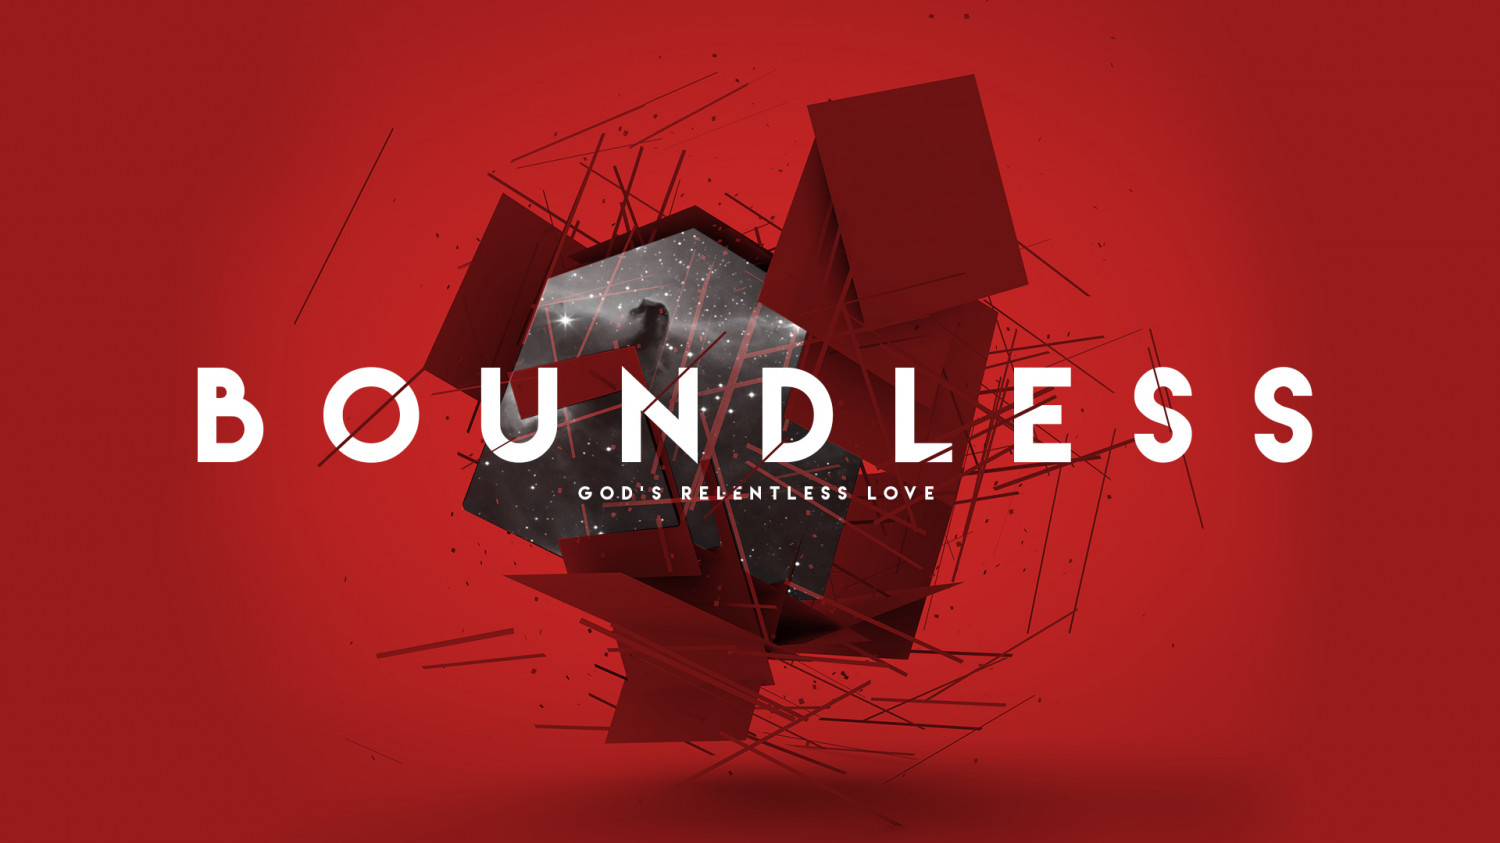 The Boundless Graphic